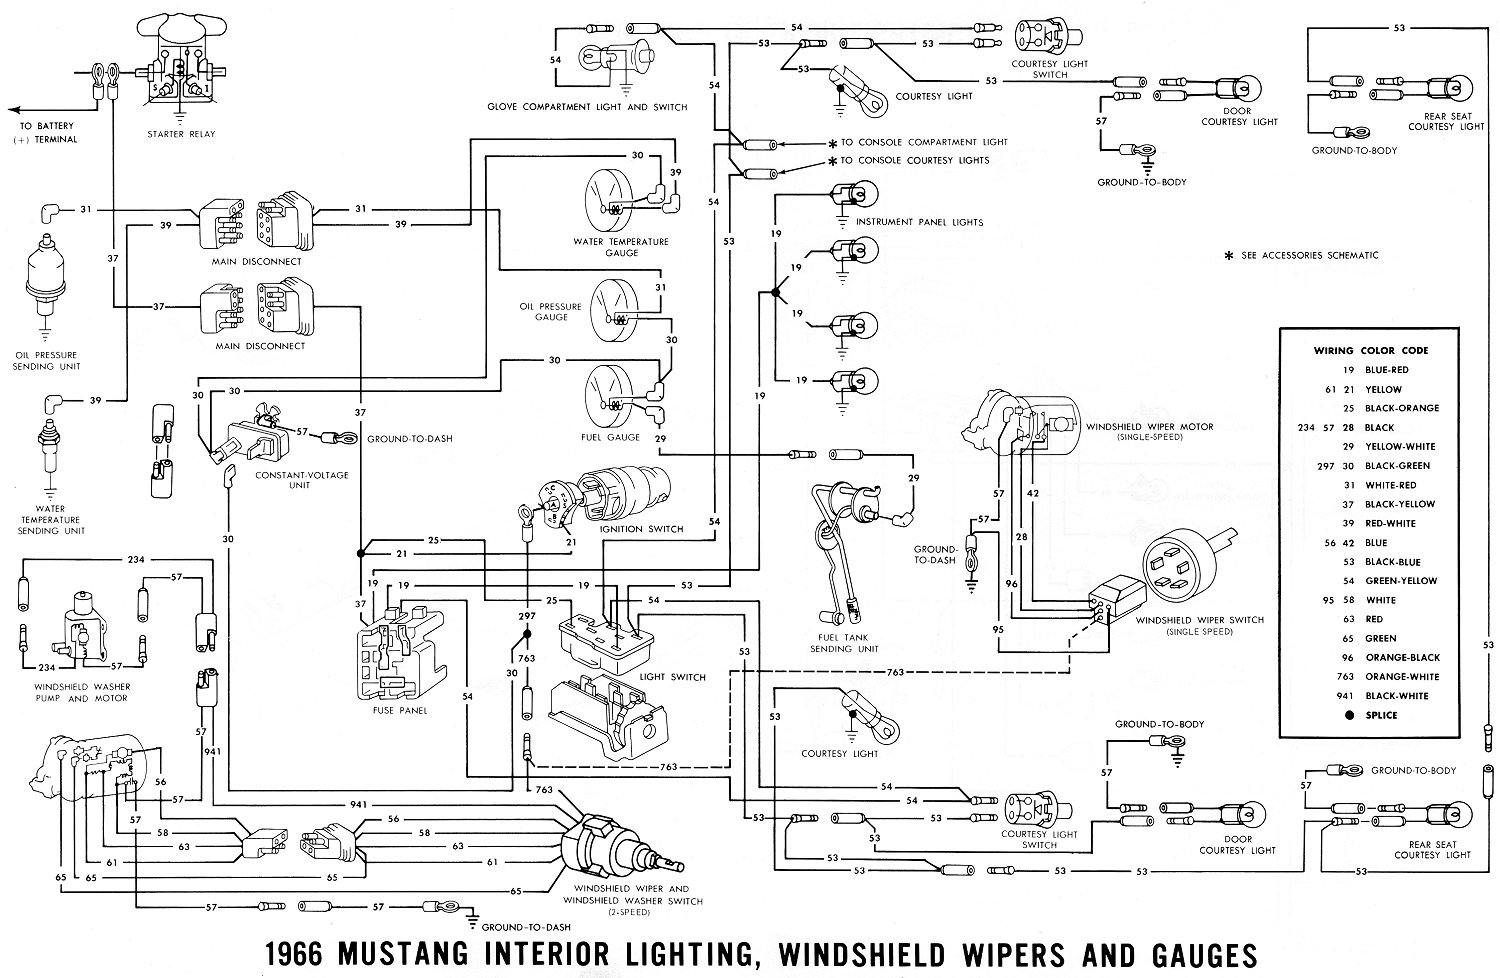 1966 mustang wiring diagrams average joe restoration  66 mustang wiring diagram schematic #1